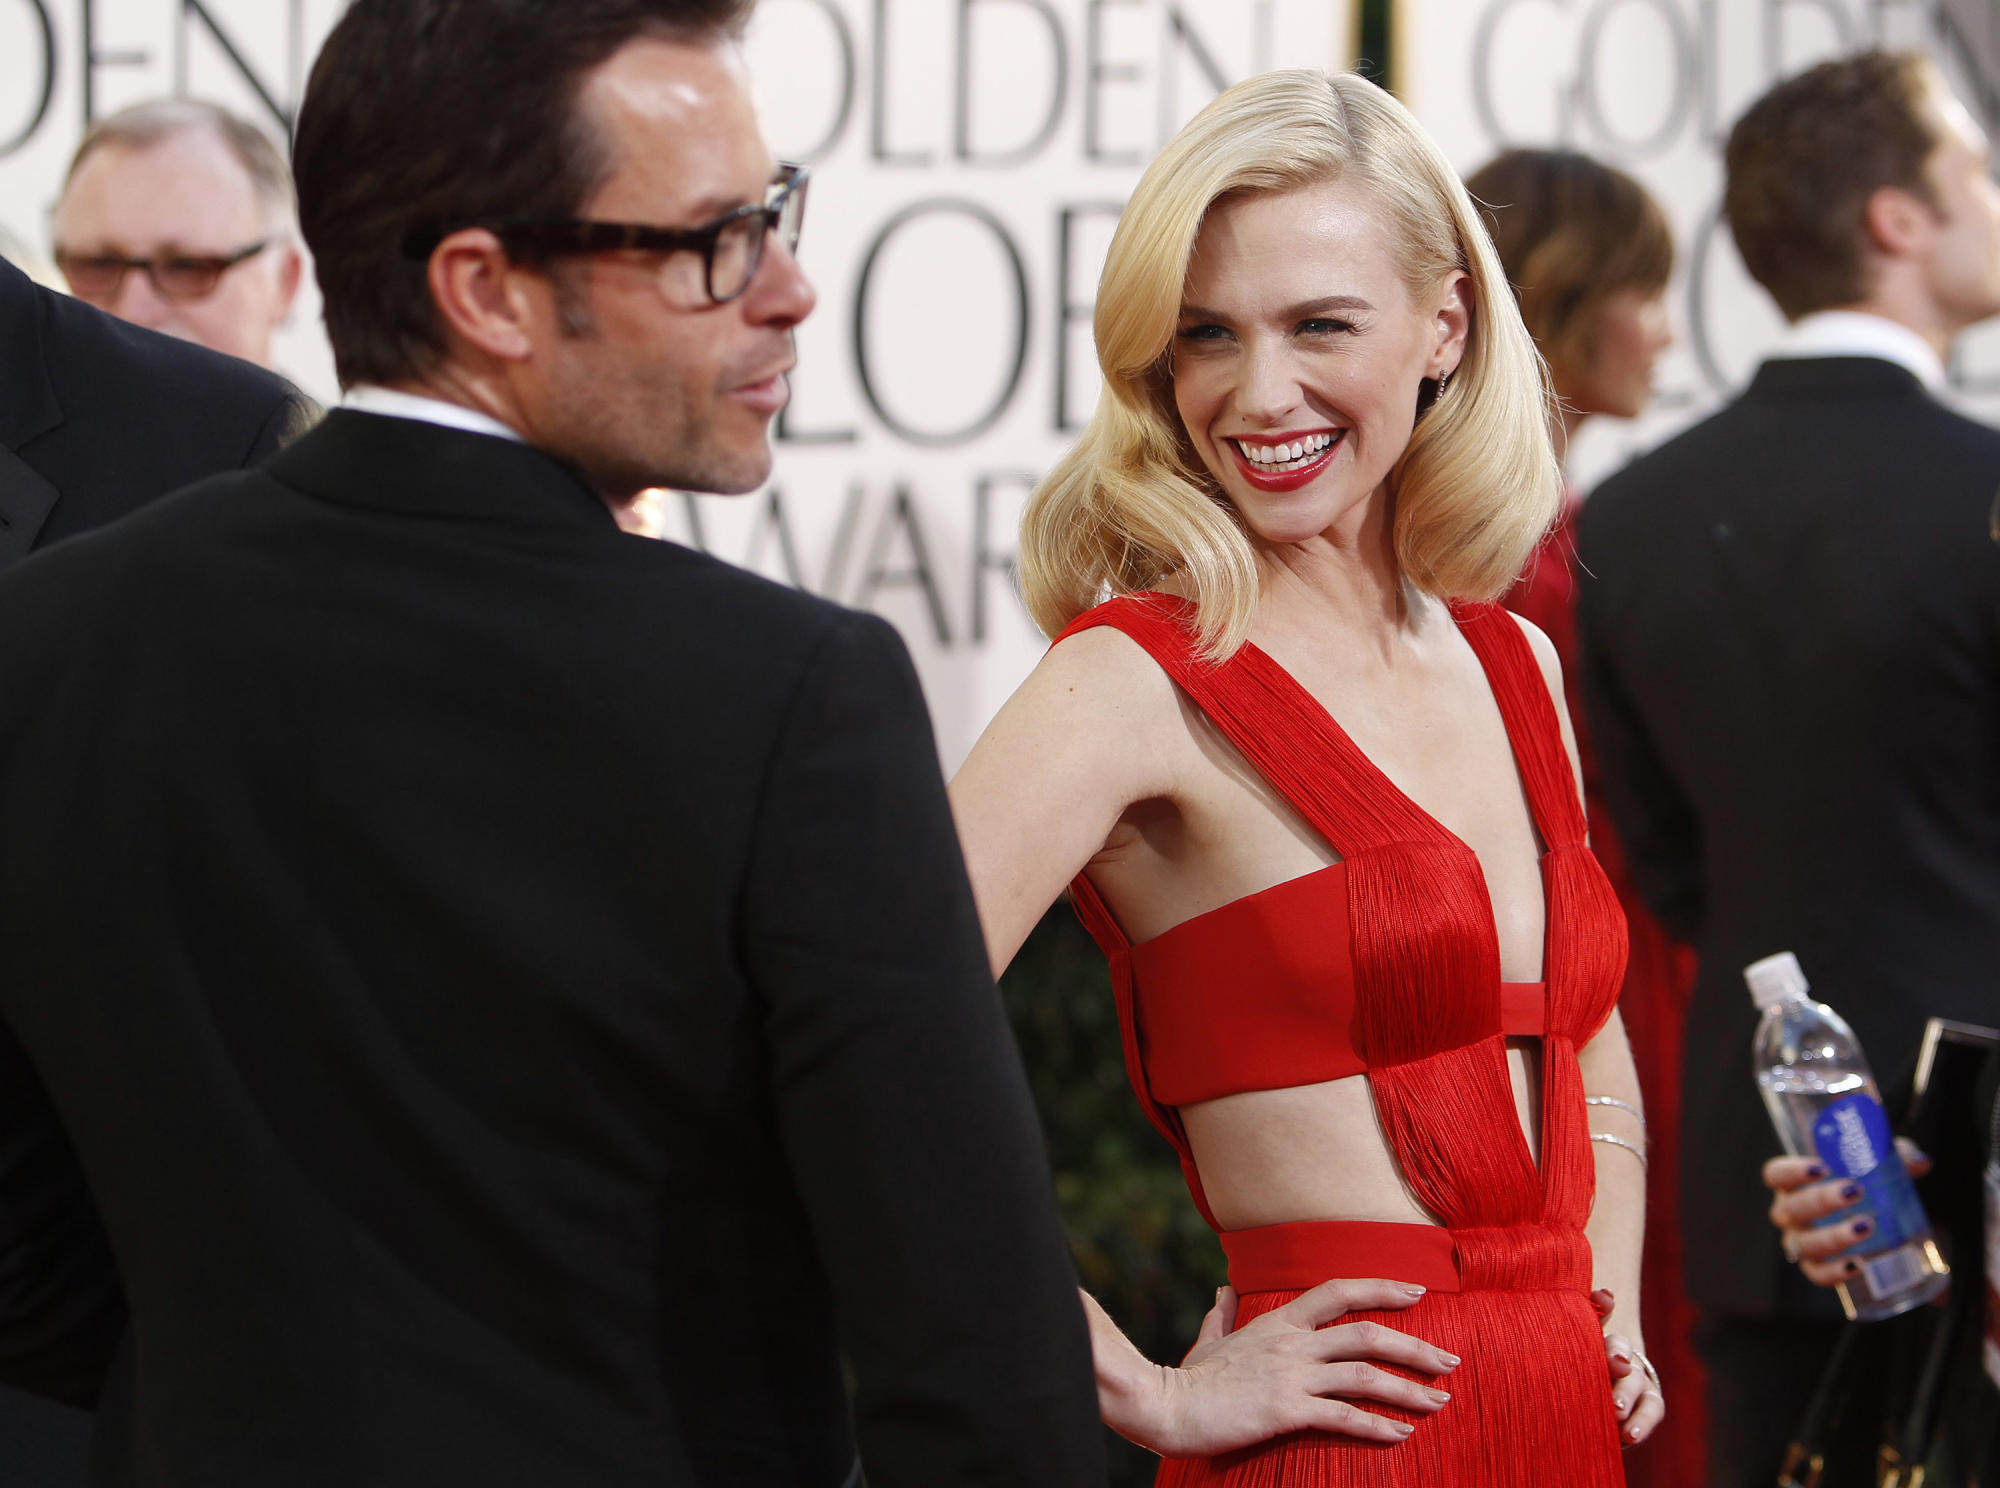 After January Jones threw on her red dress from 10 years ago, the actress's